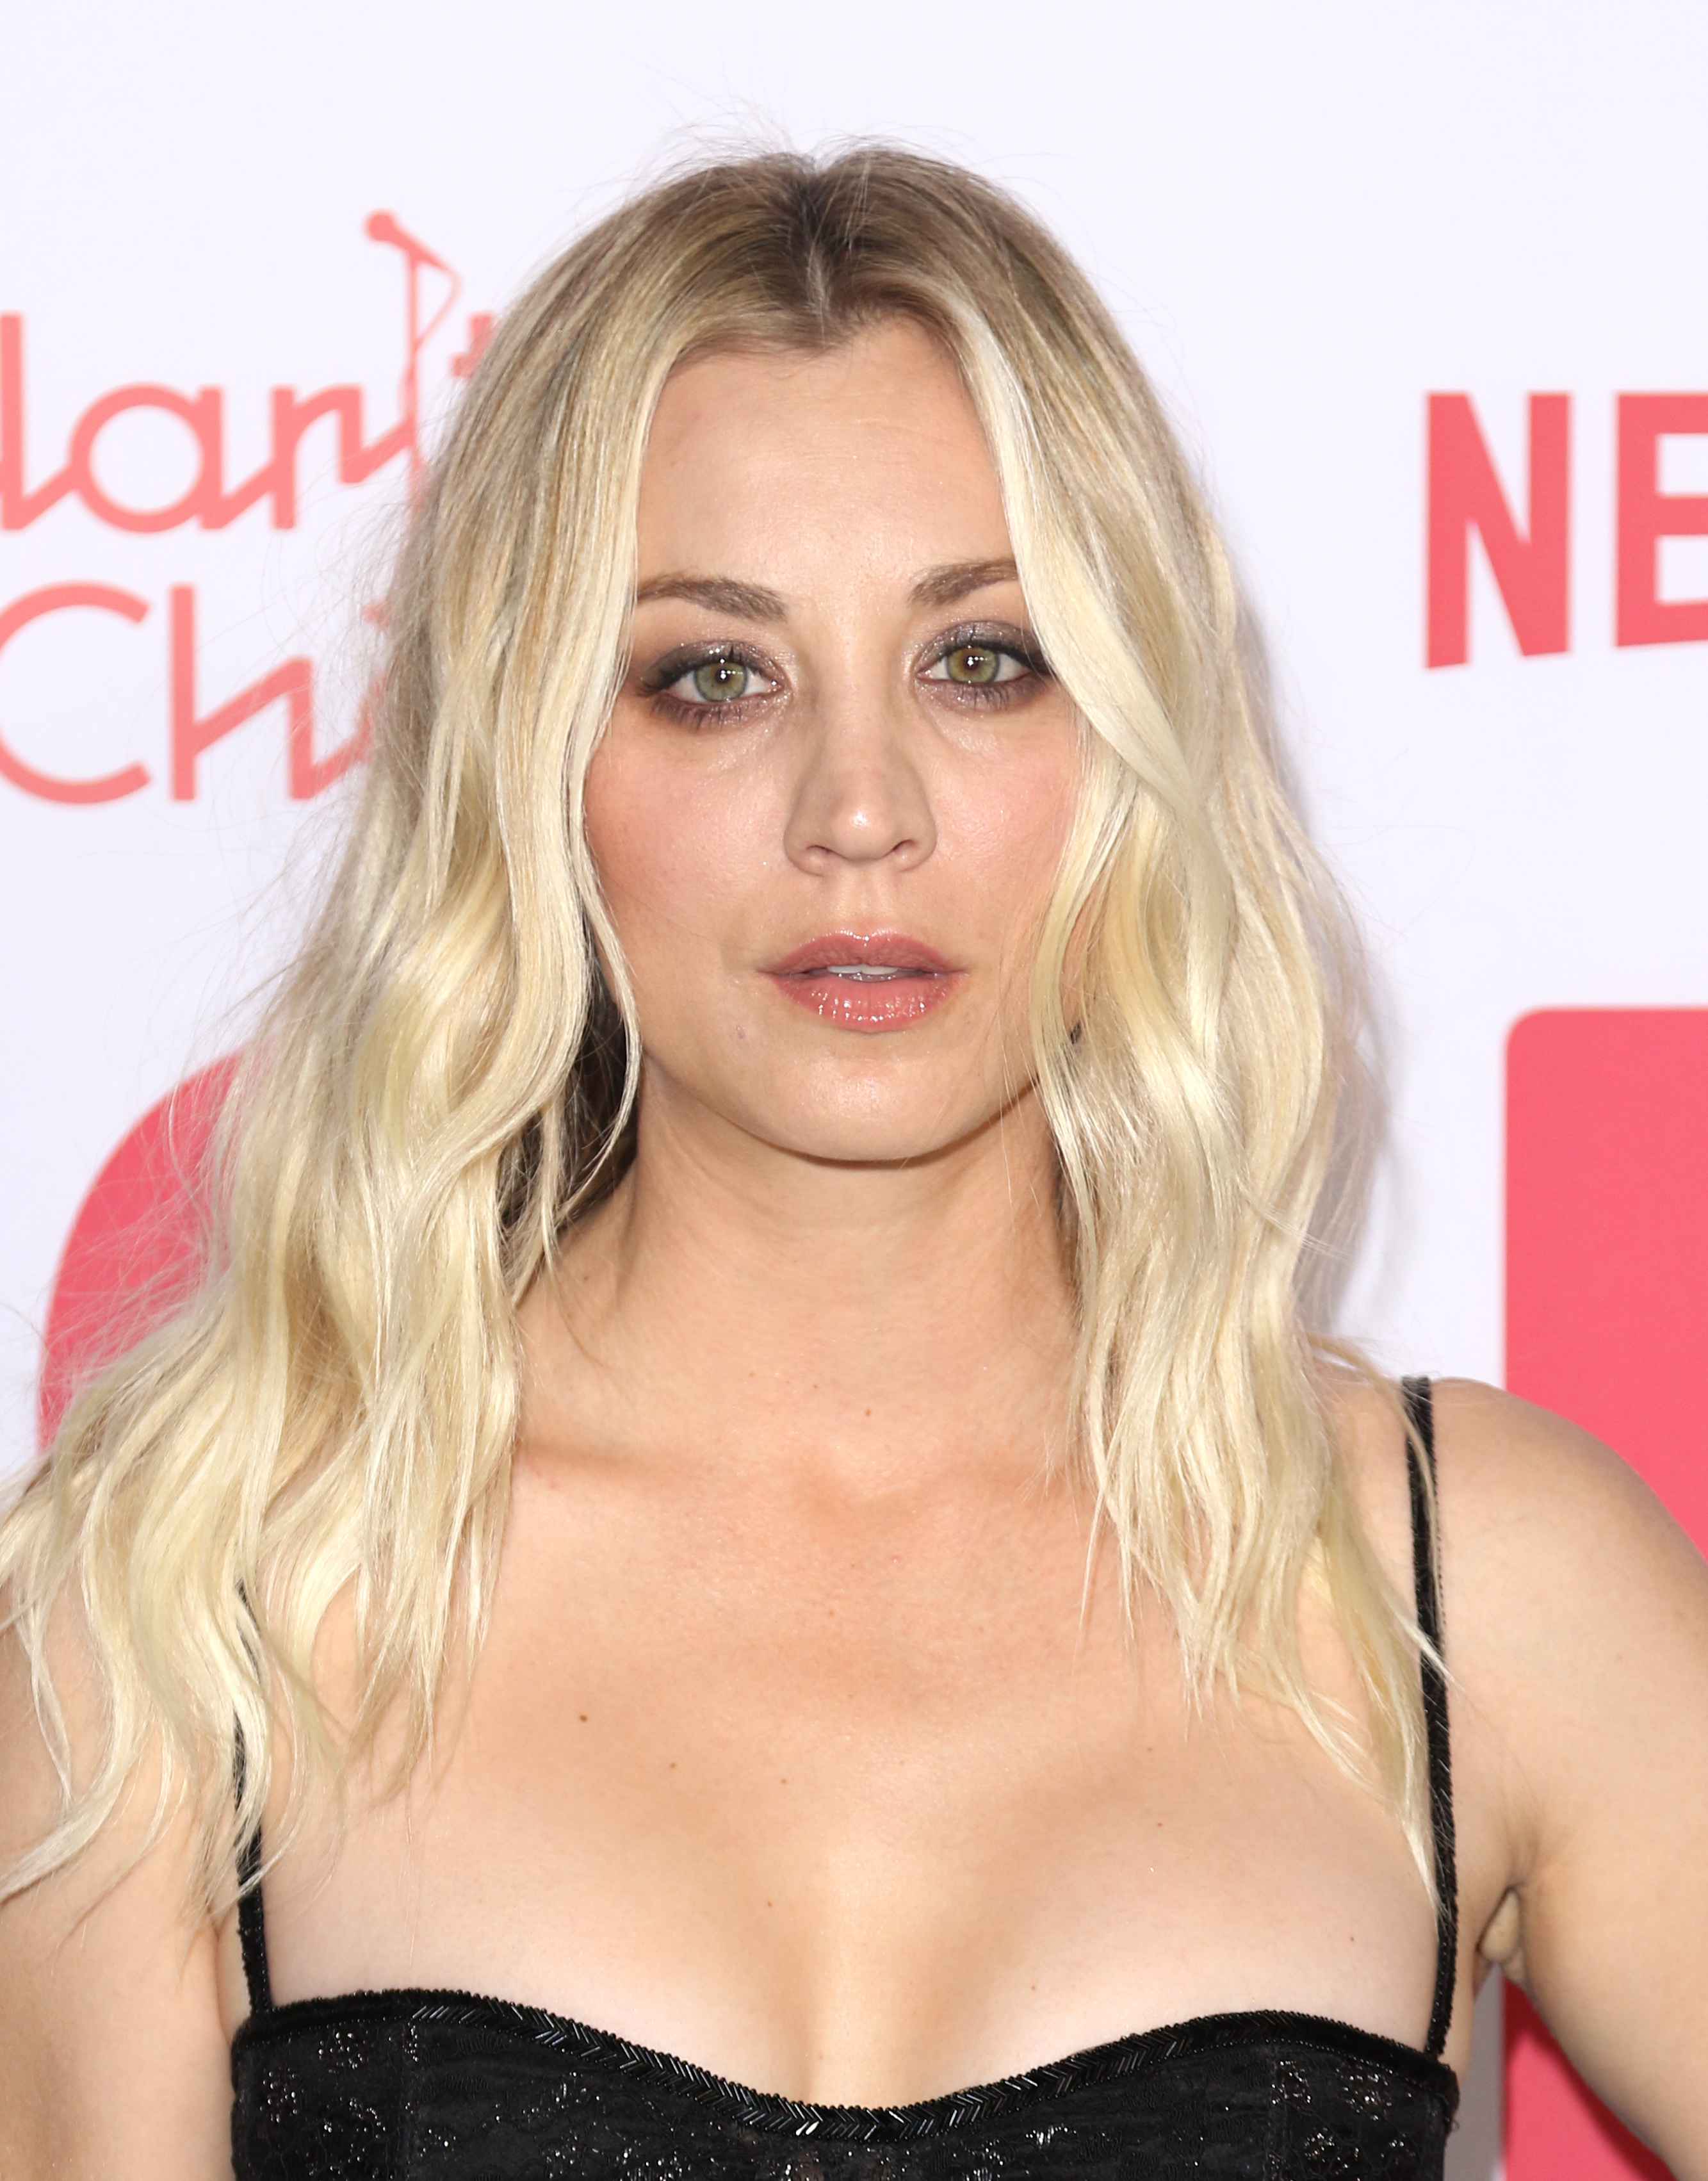 Apologise, but, kaley cuoco nipples happens. think